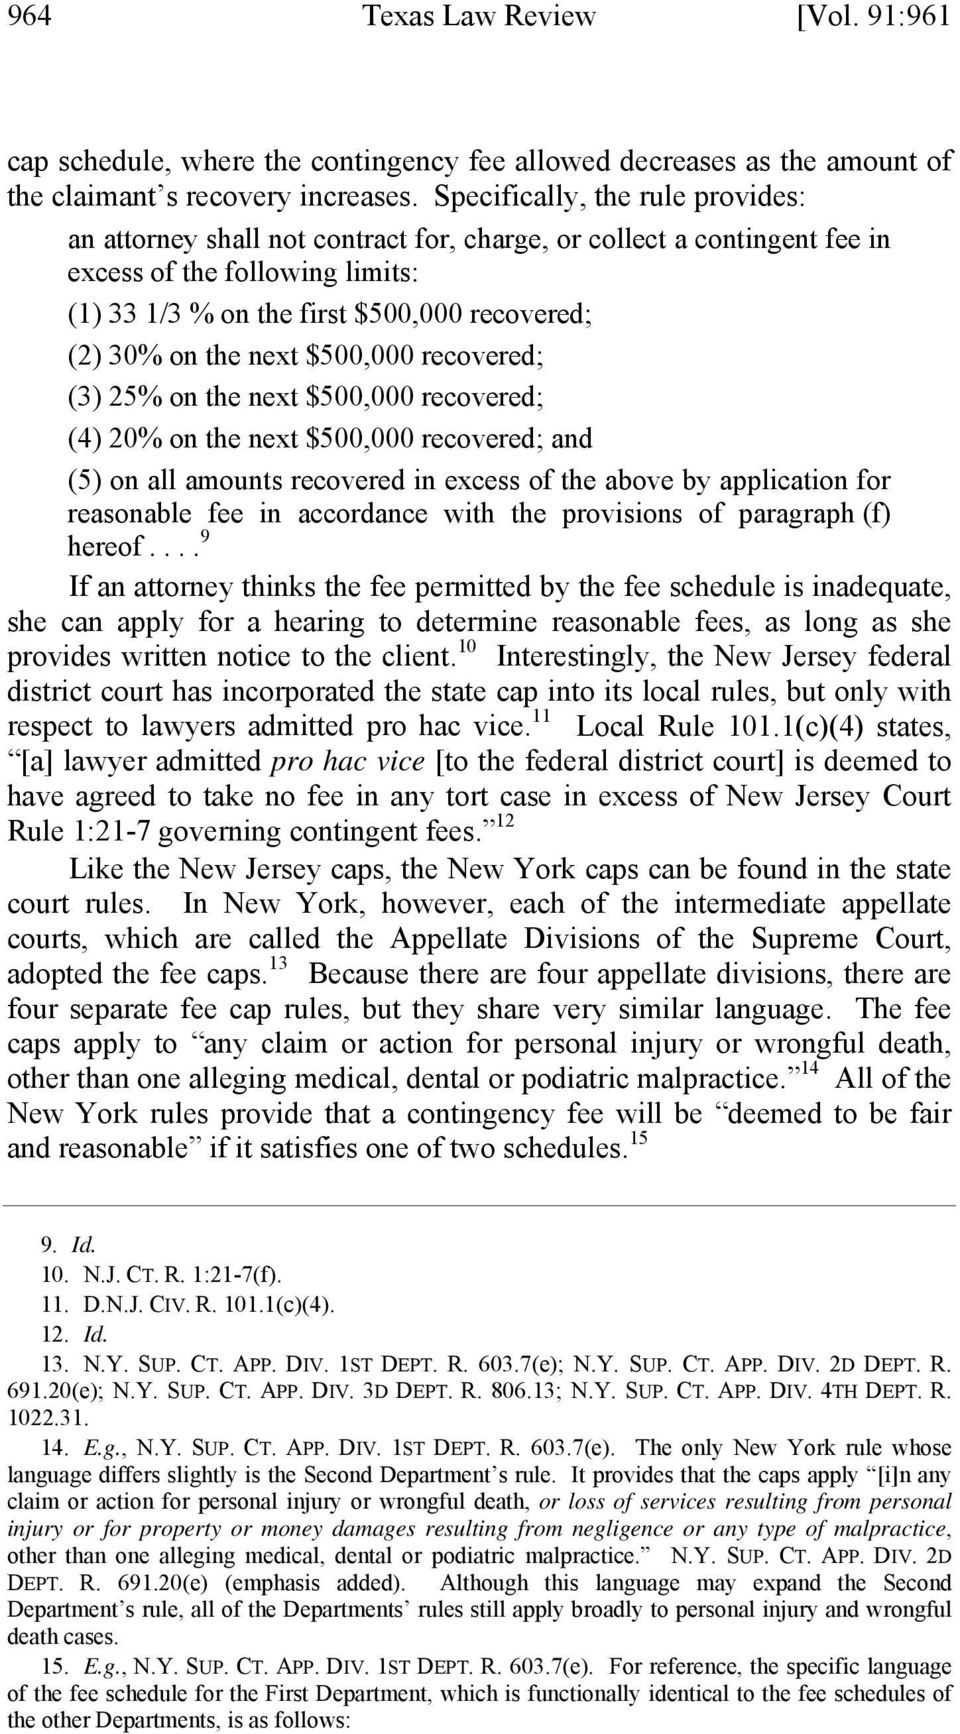 the next $500,000 recovered; (3) 25% on the next $500,000 recovered; (4) 20% on the next $500,000 recovered; and (5) on all amounts recovered in excess of the above by application for reasonable fee